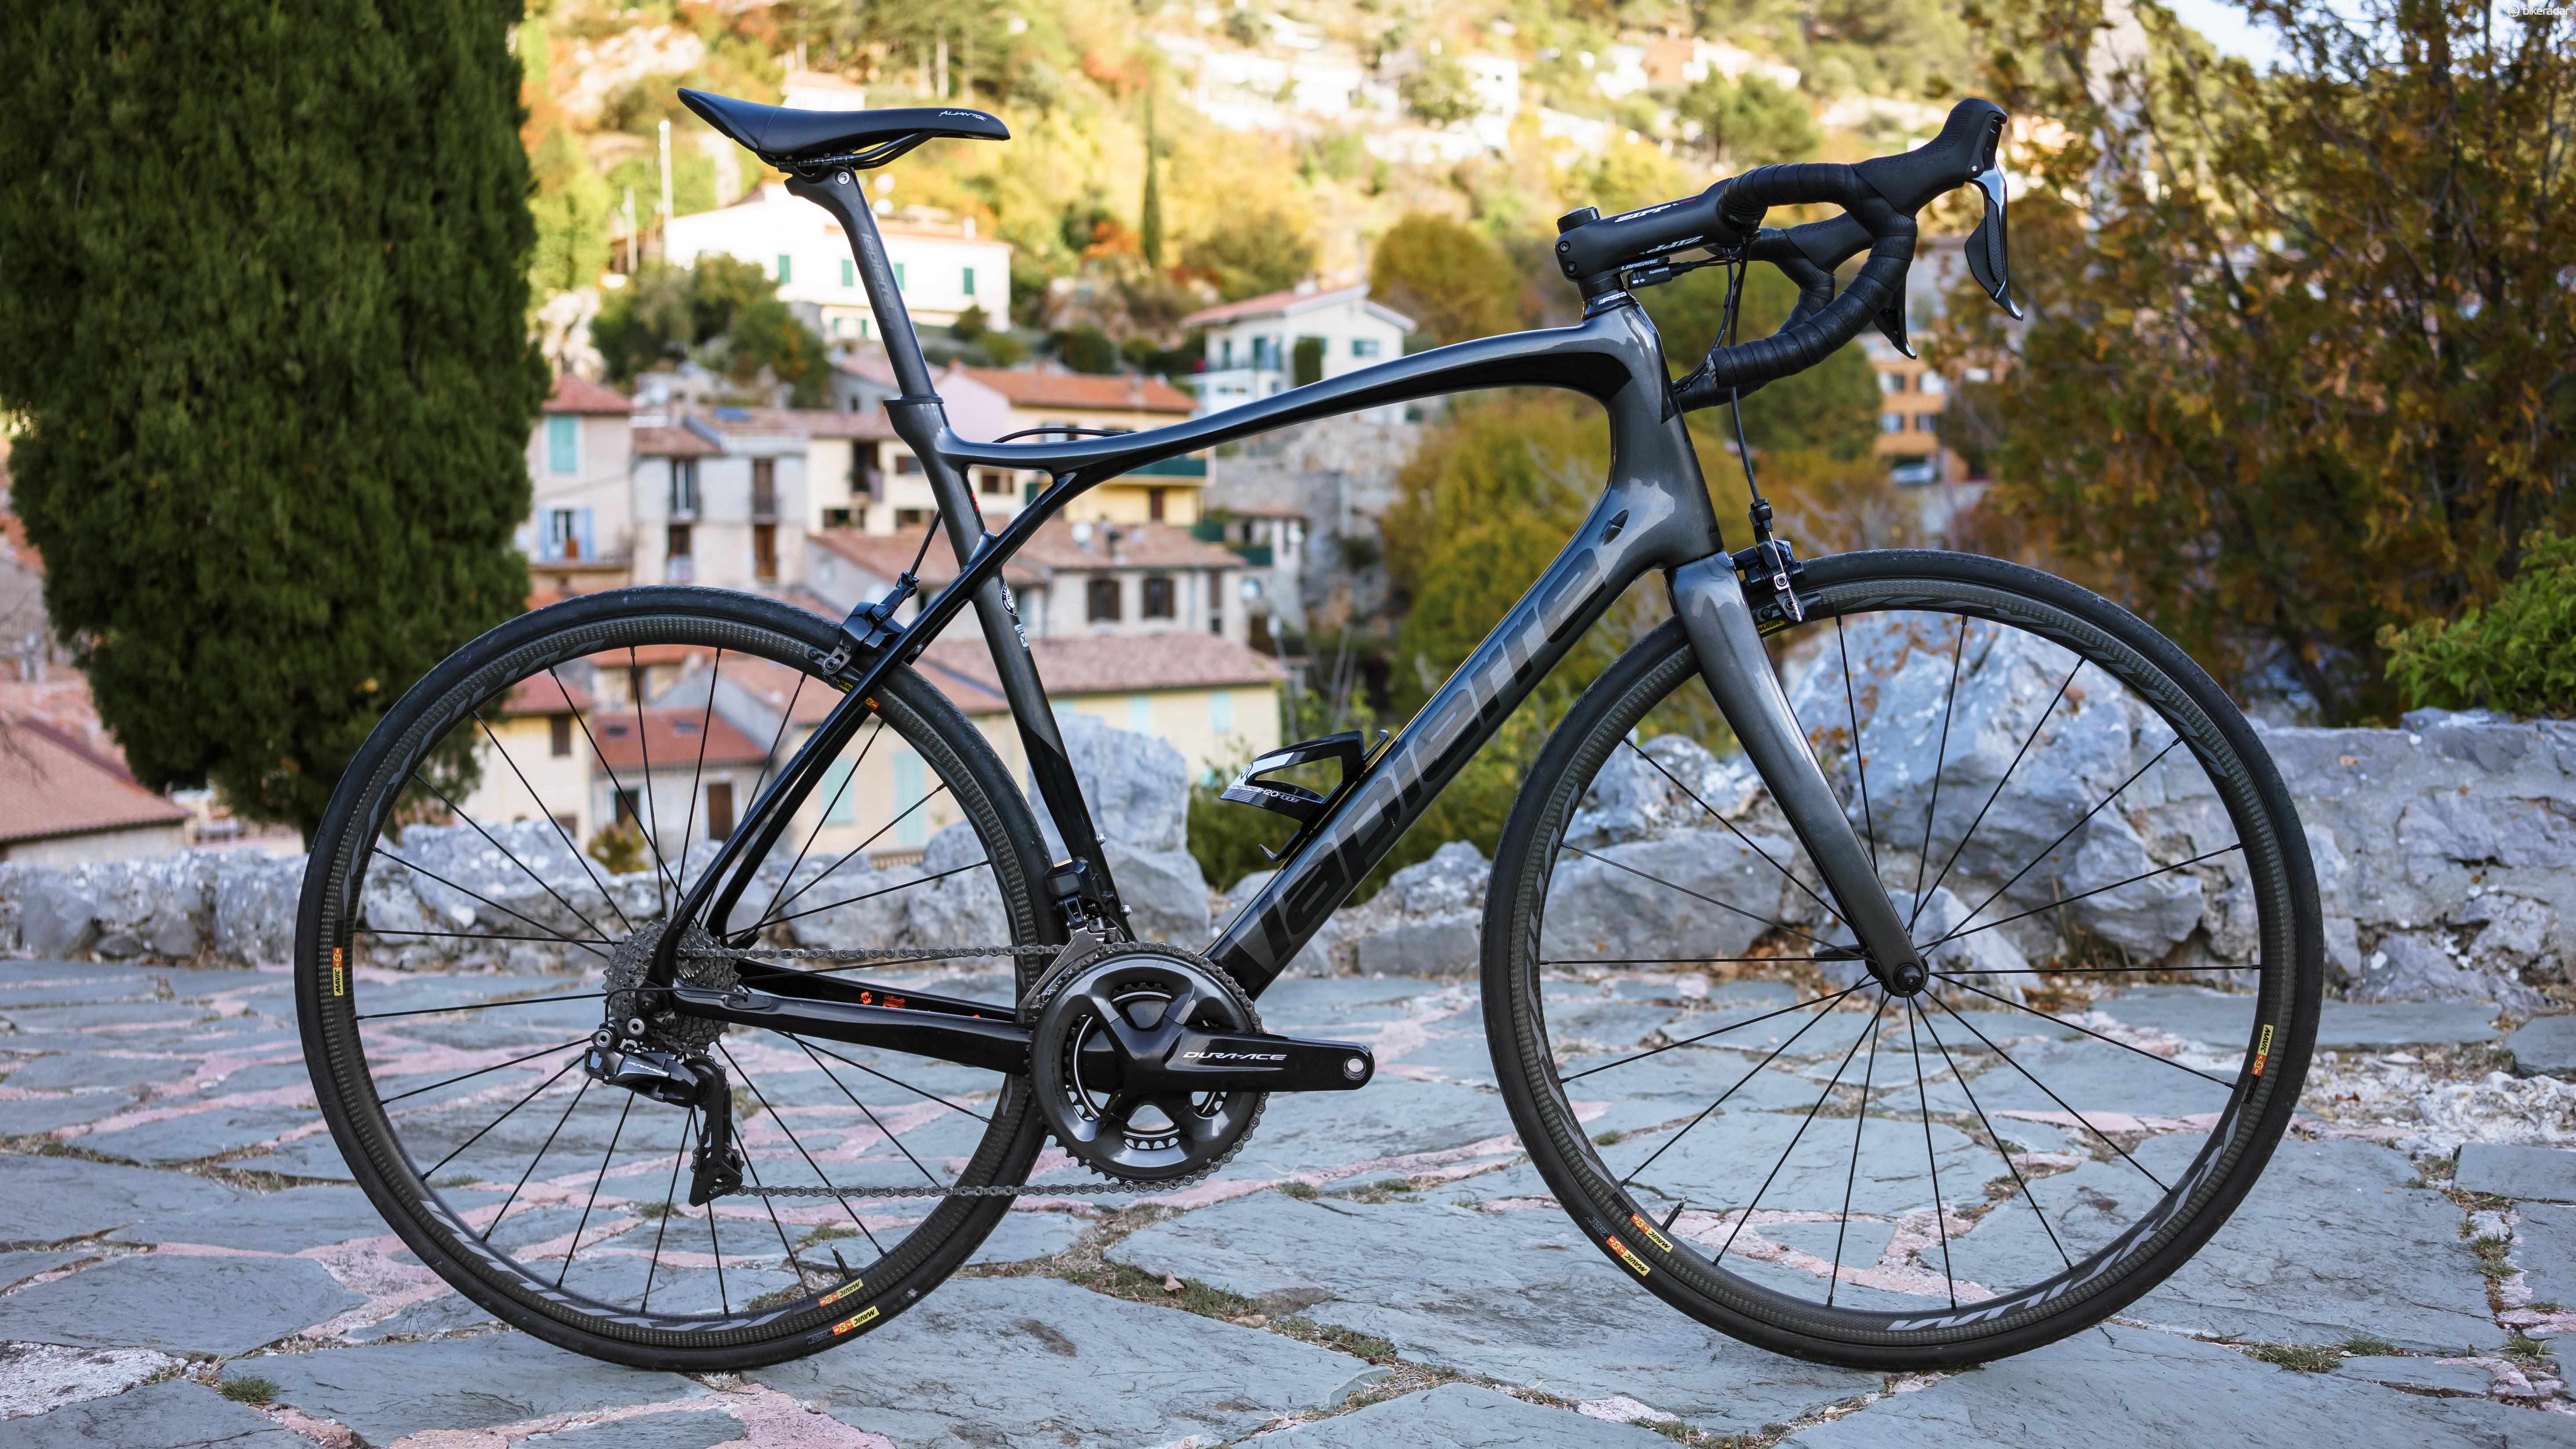 The Lapierre Pulsium is designed for long days on the road